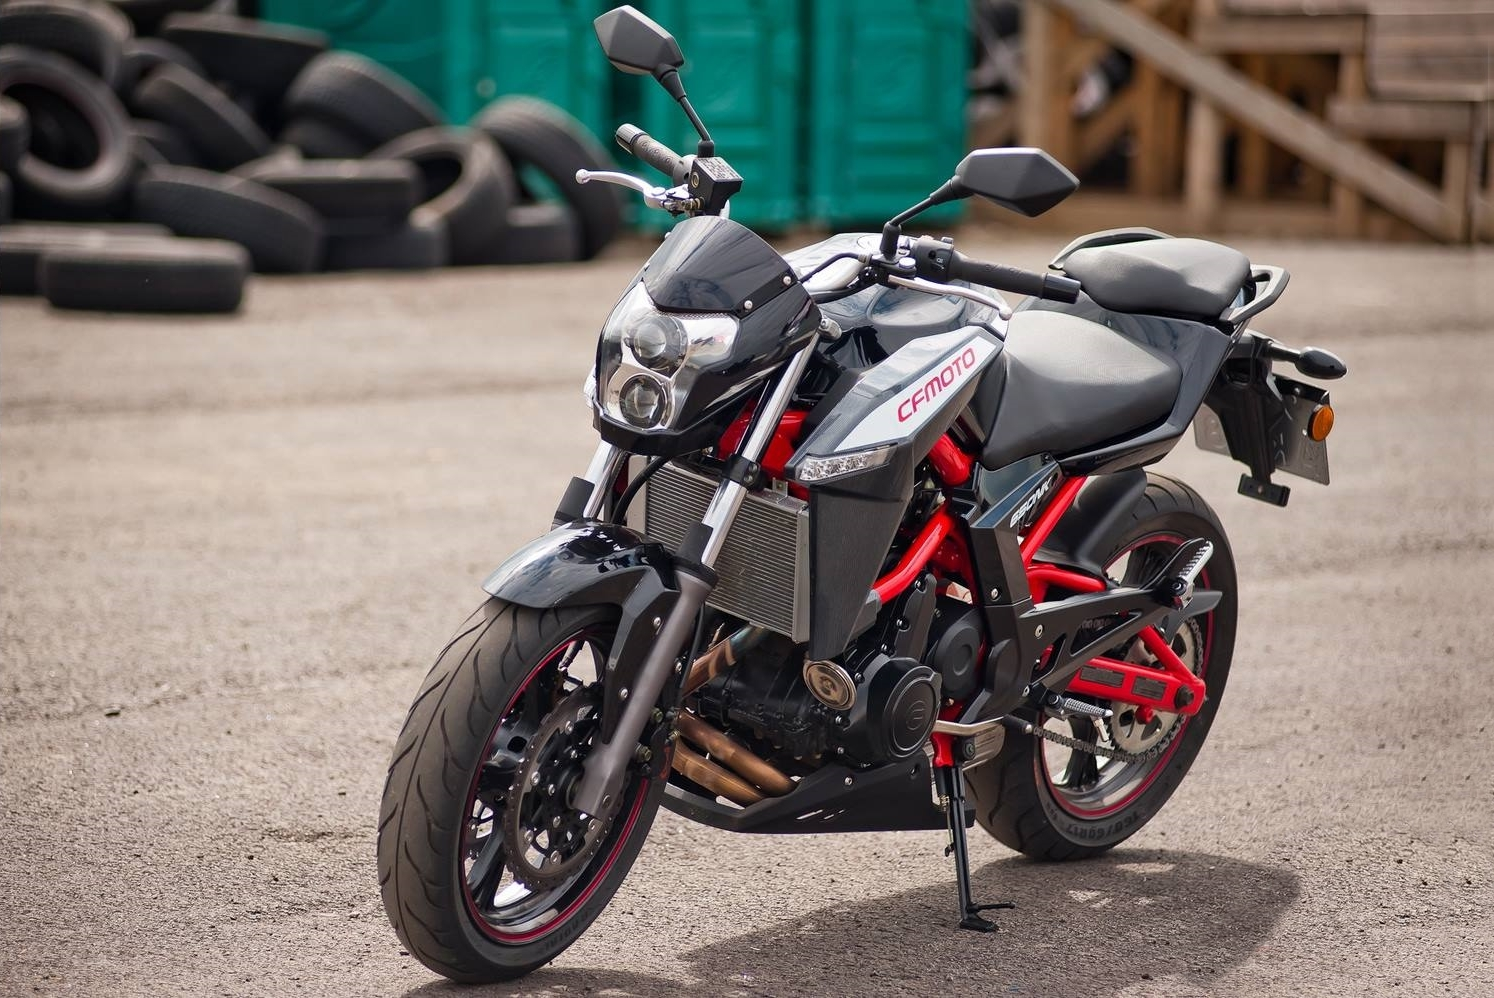 Eider Motors launches CFMoto 650 NK and 8 other models in ...